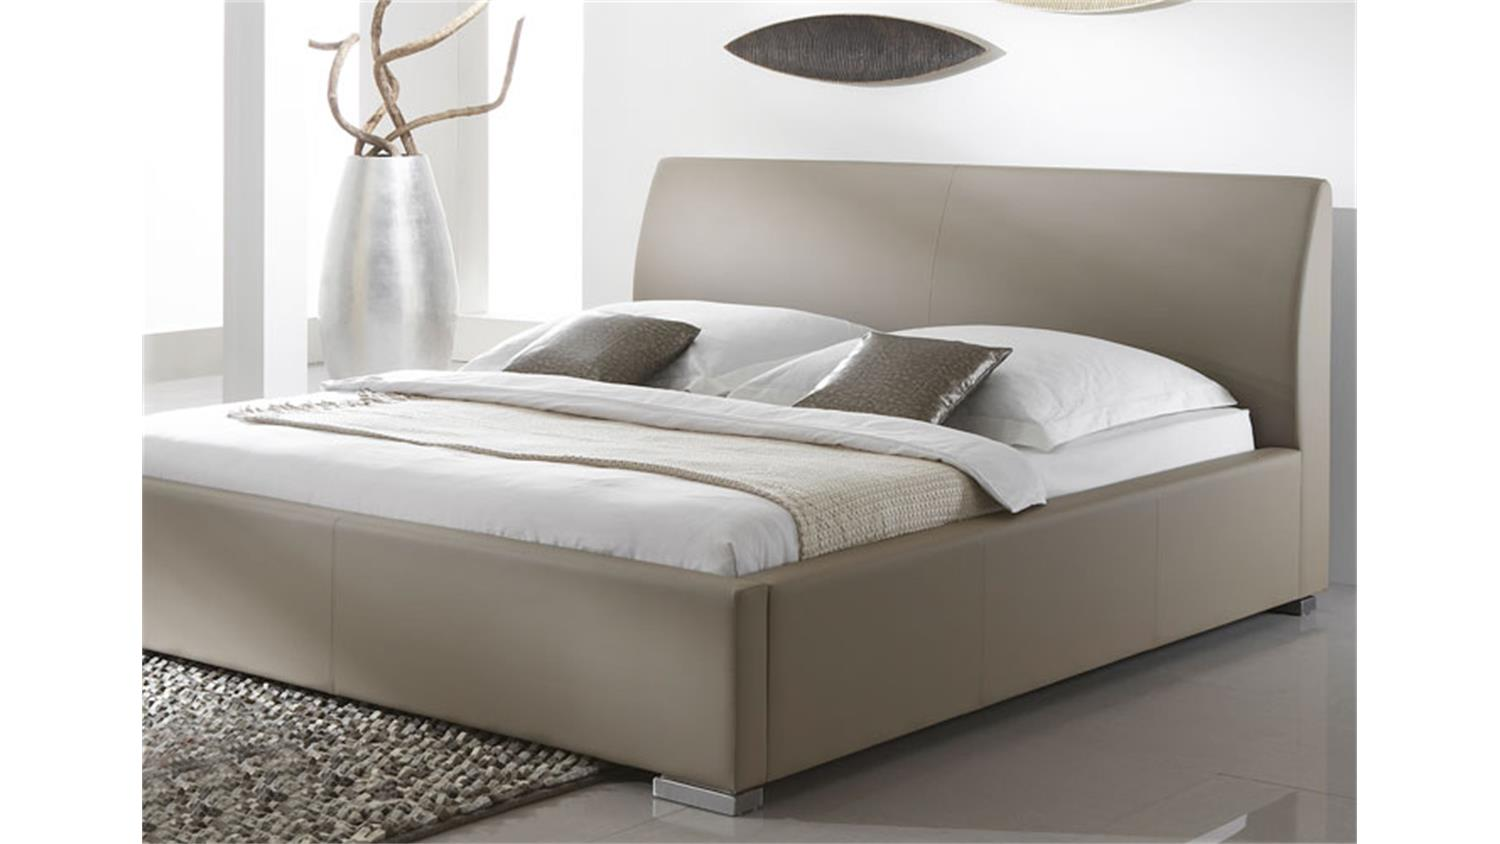 polsterbett delgado ii komfortbett in beige braun 180x200. Black Bedroom Furniture Sets. Home Design Ideas